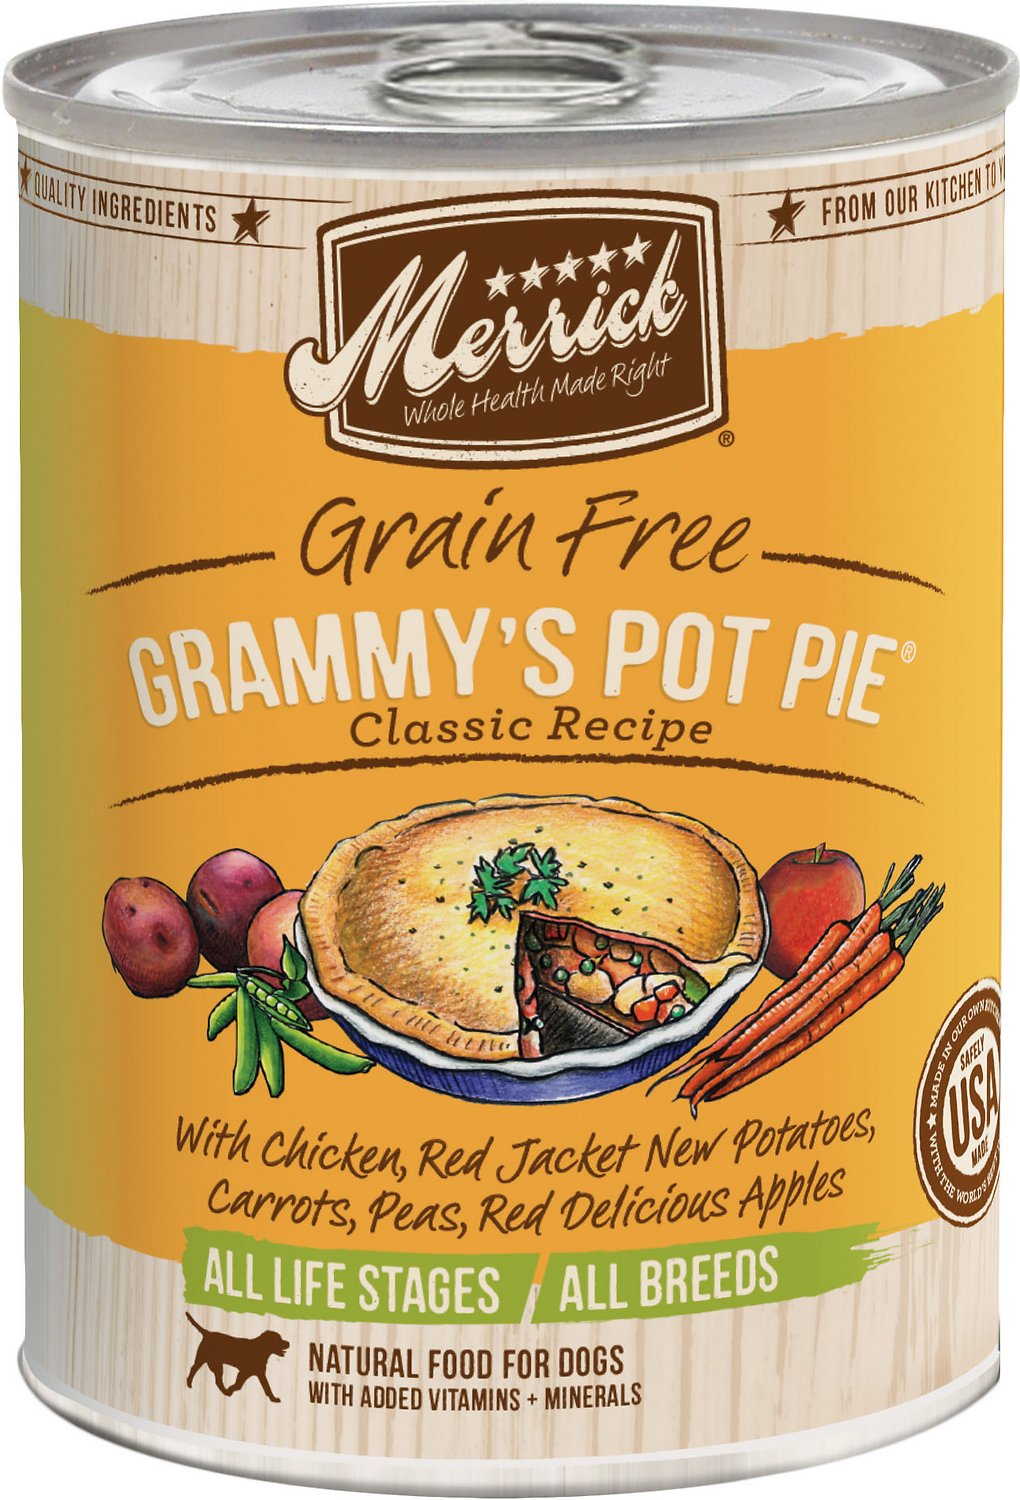 Merrick Grain-Free Grammy's Pot Pie Recipe Canned Dog Food